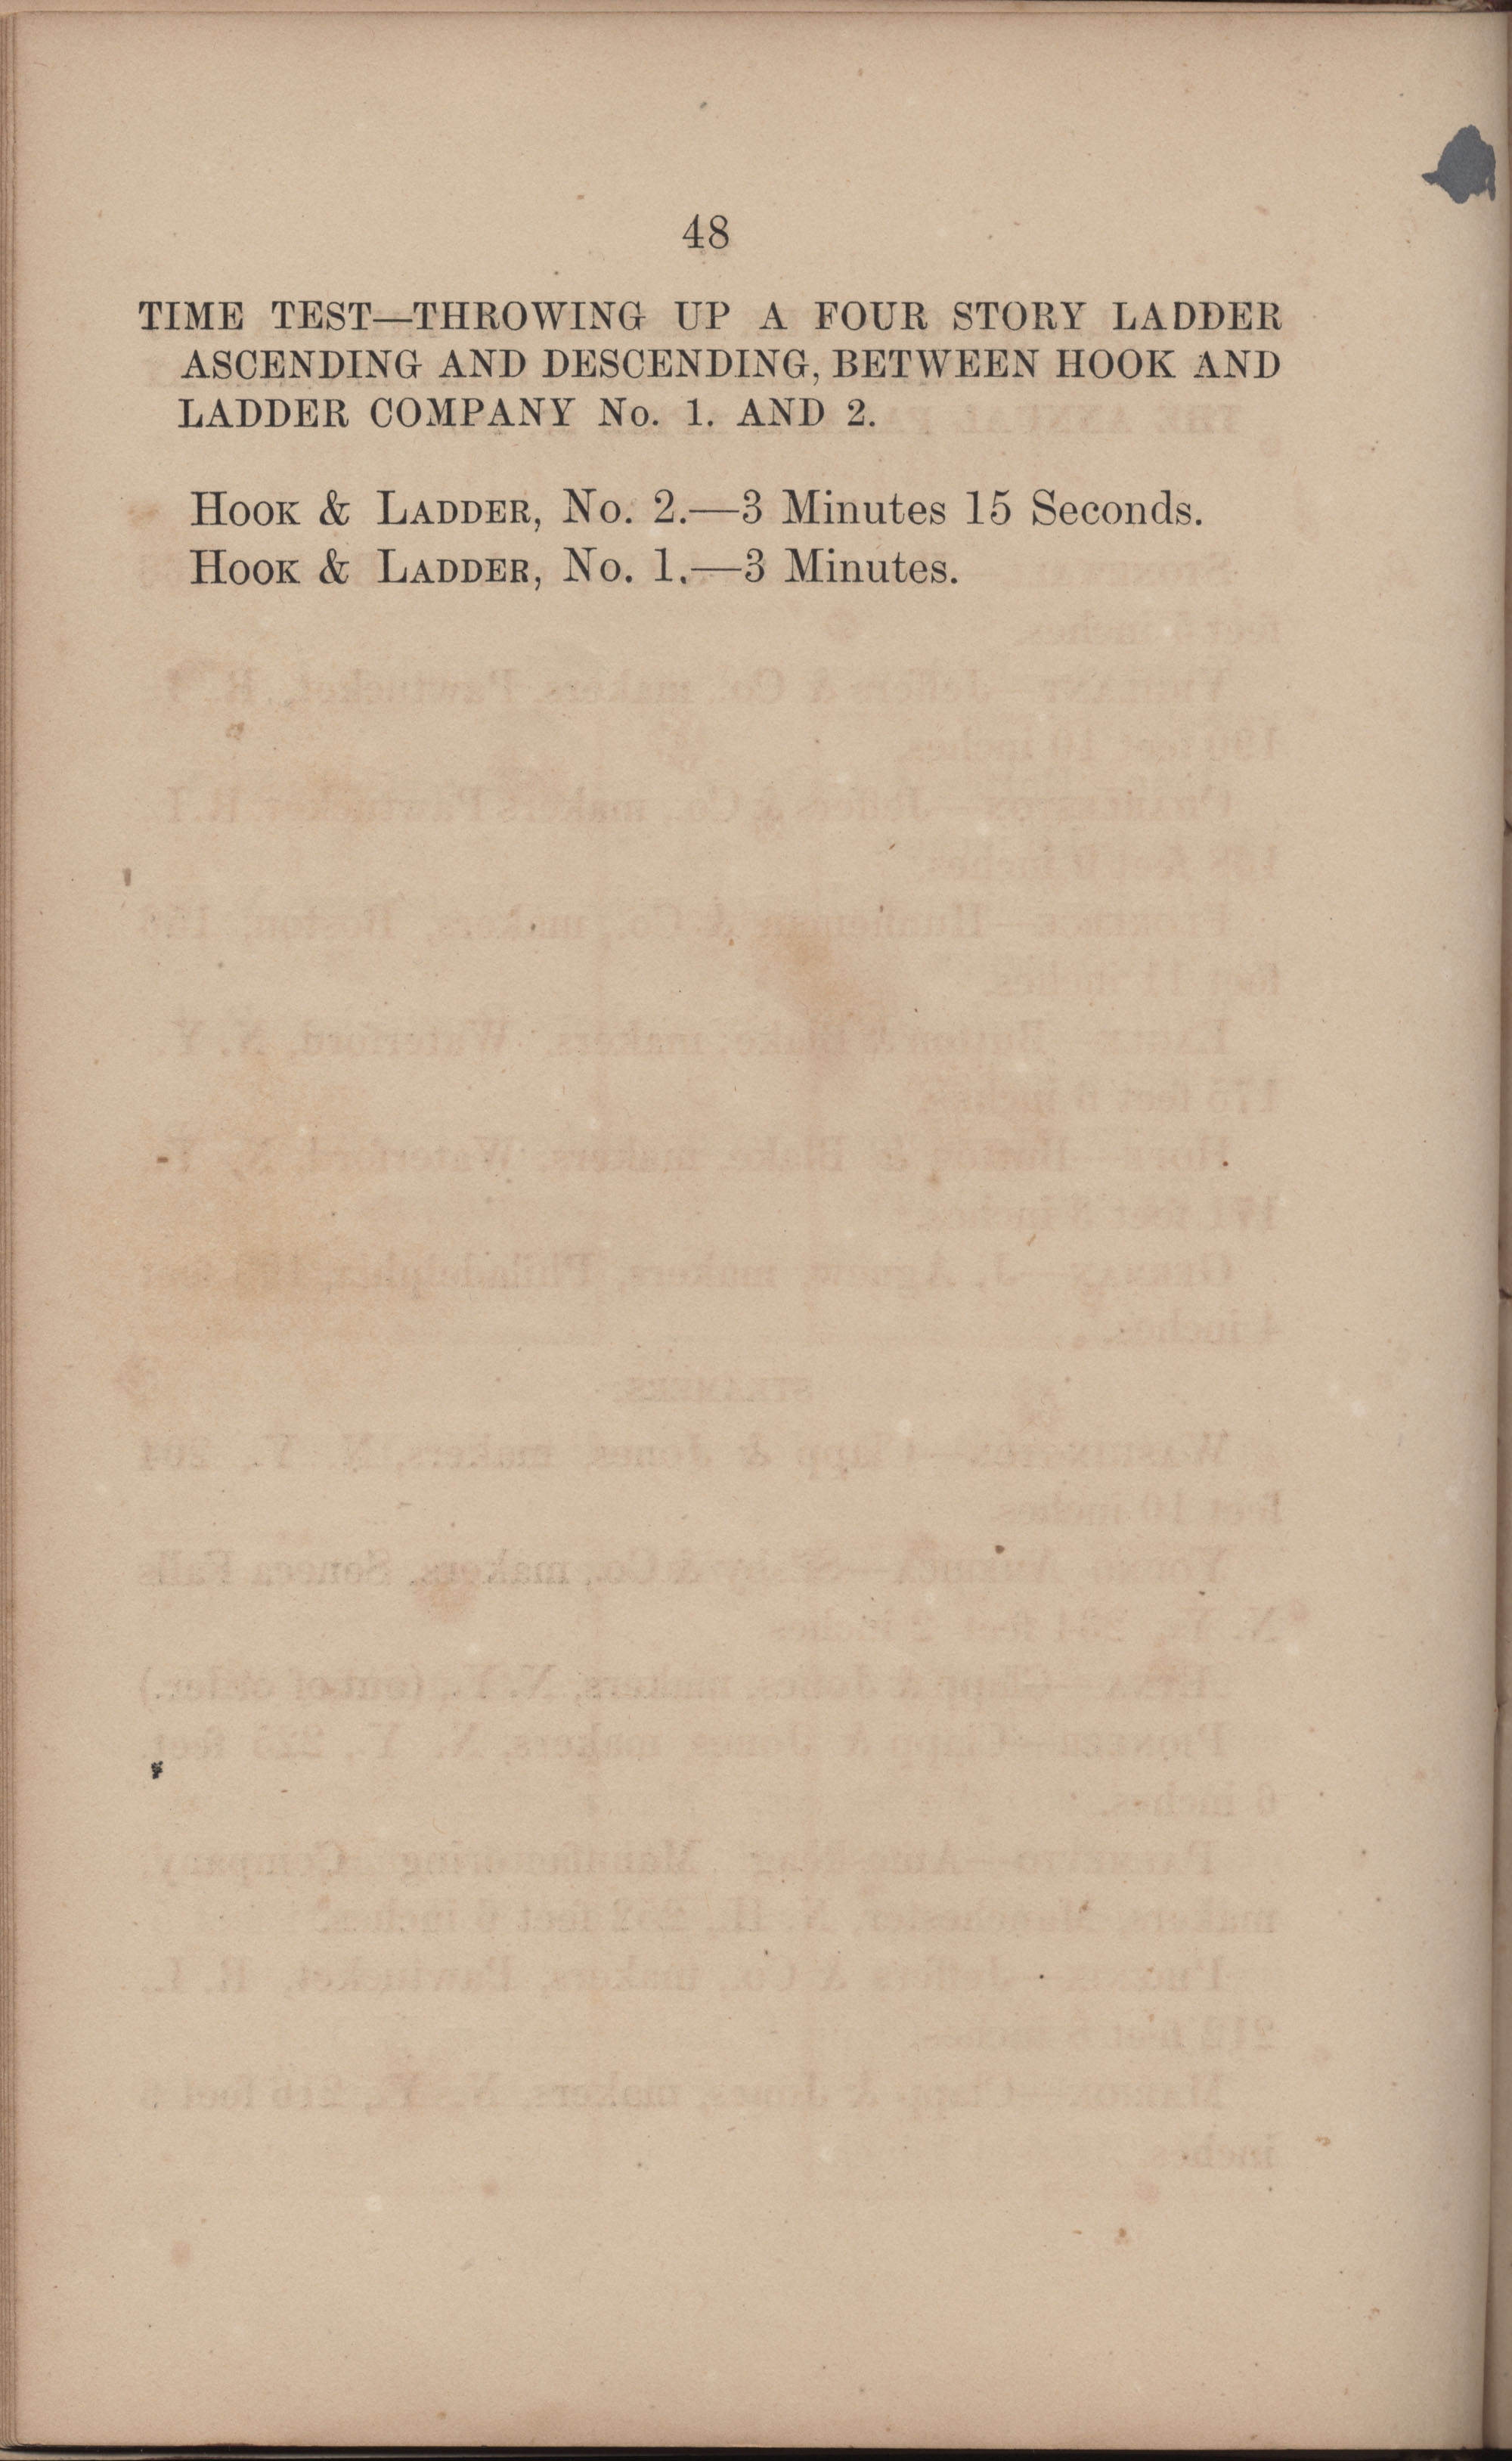 Annual Report of the Chief of the Fire Department of the City of Charleston, page 226